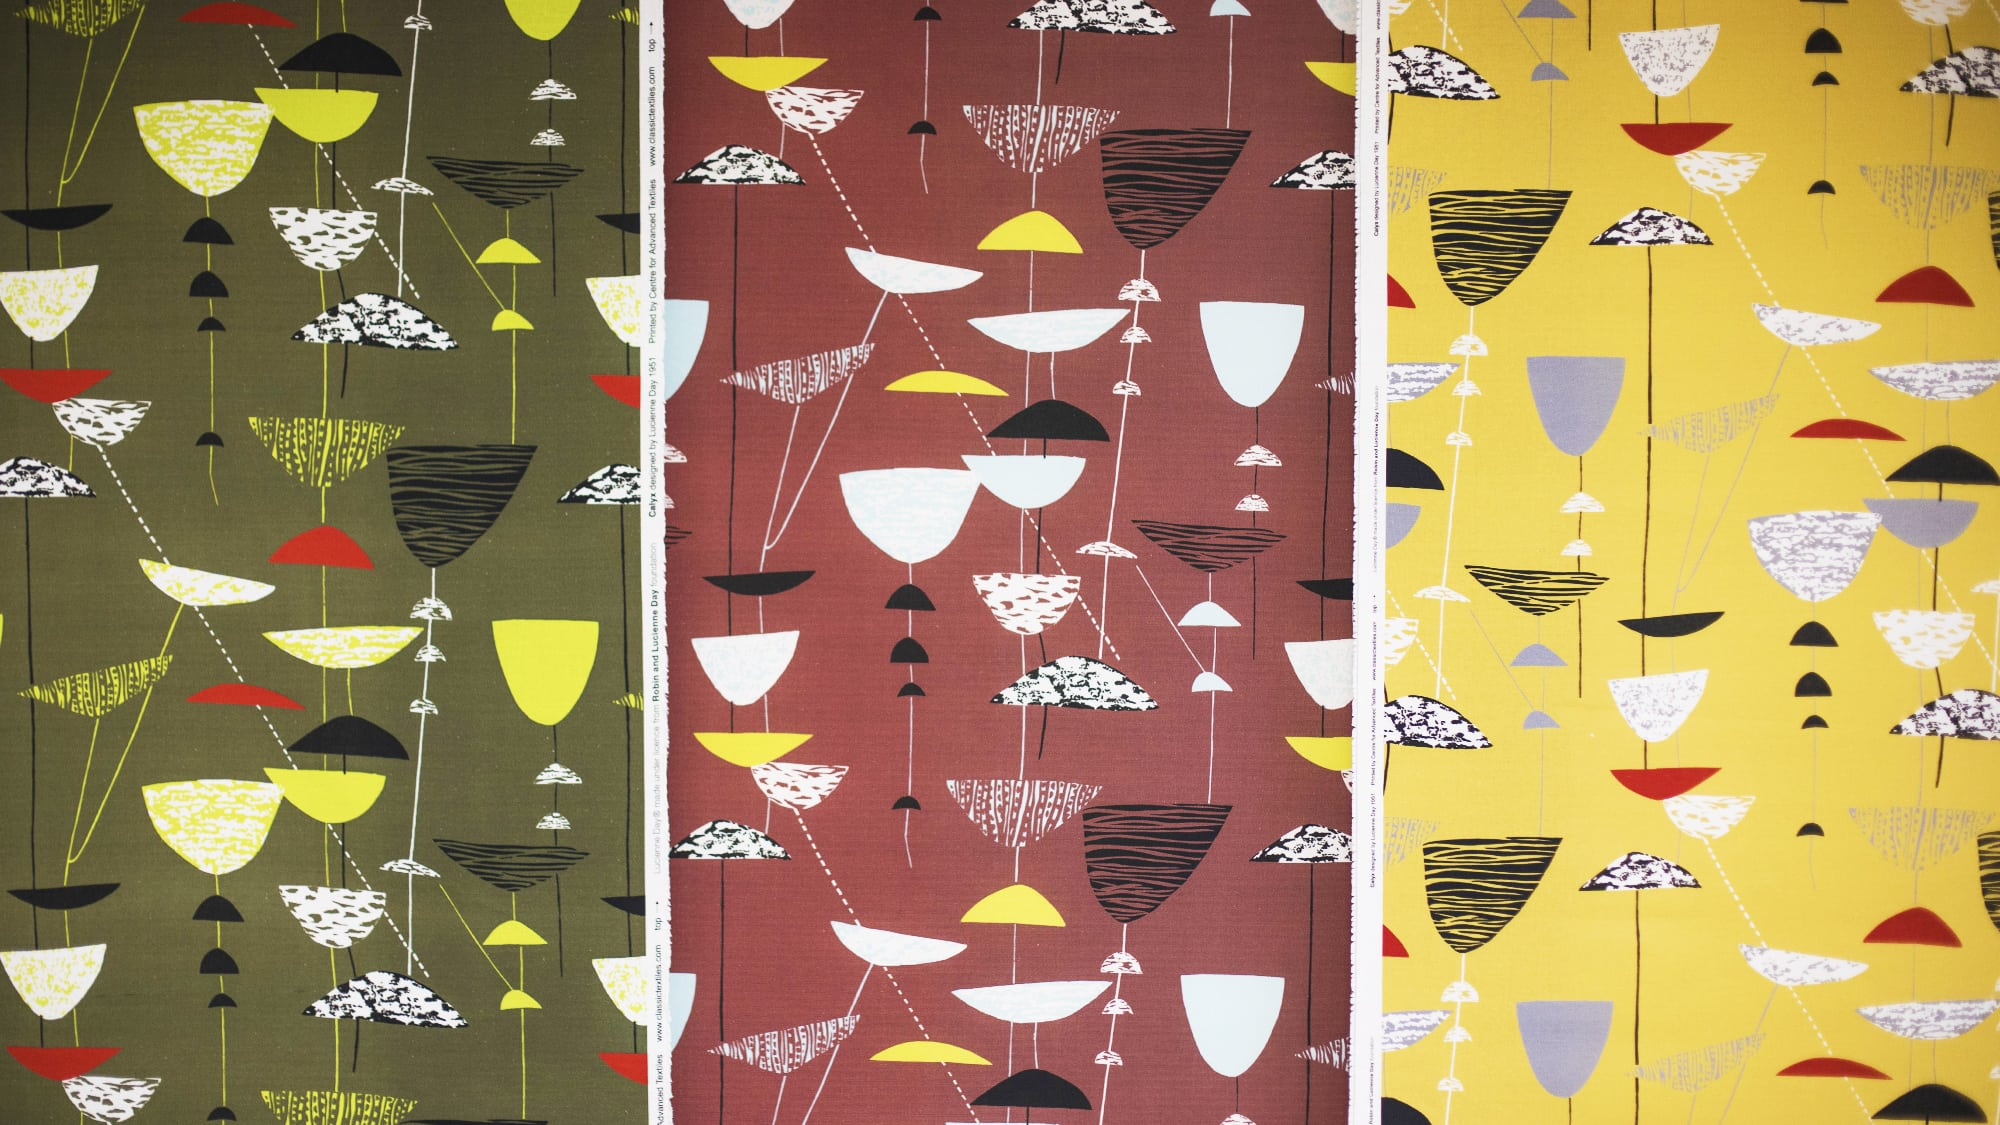 Lucienne Day exhibition co-curated by AUB Deputy Vice-Chancellor goes international